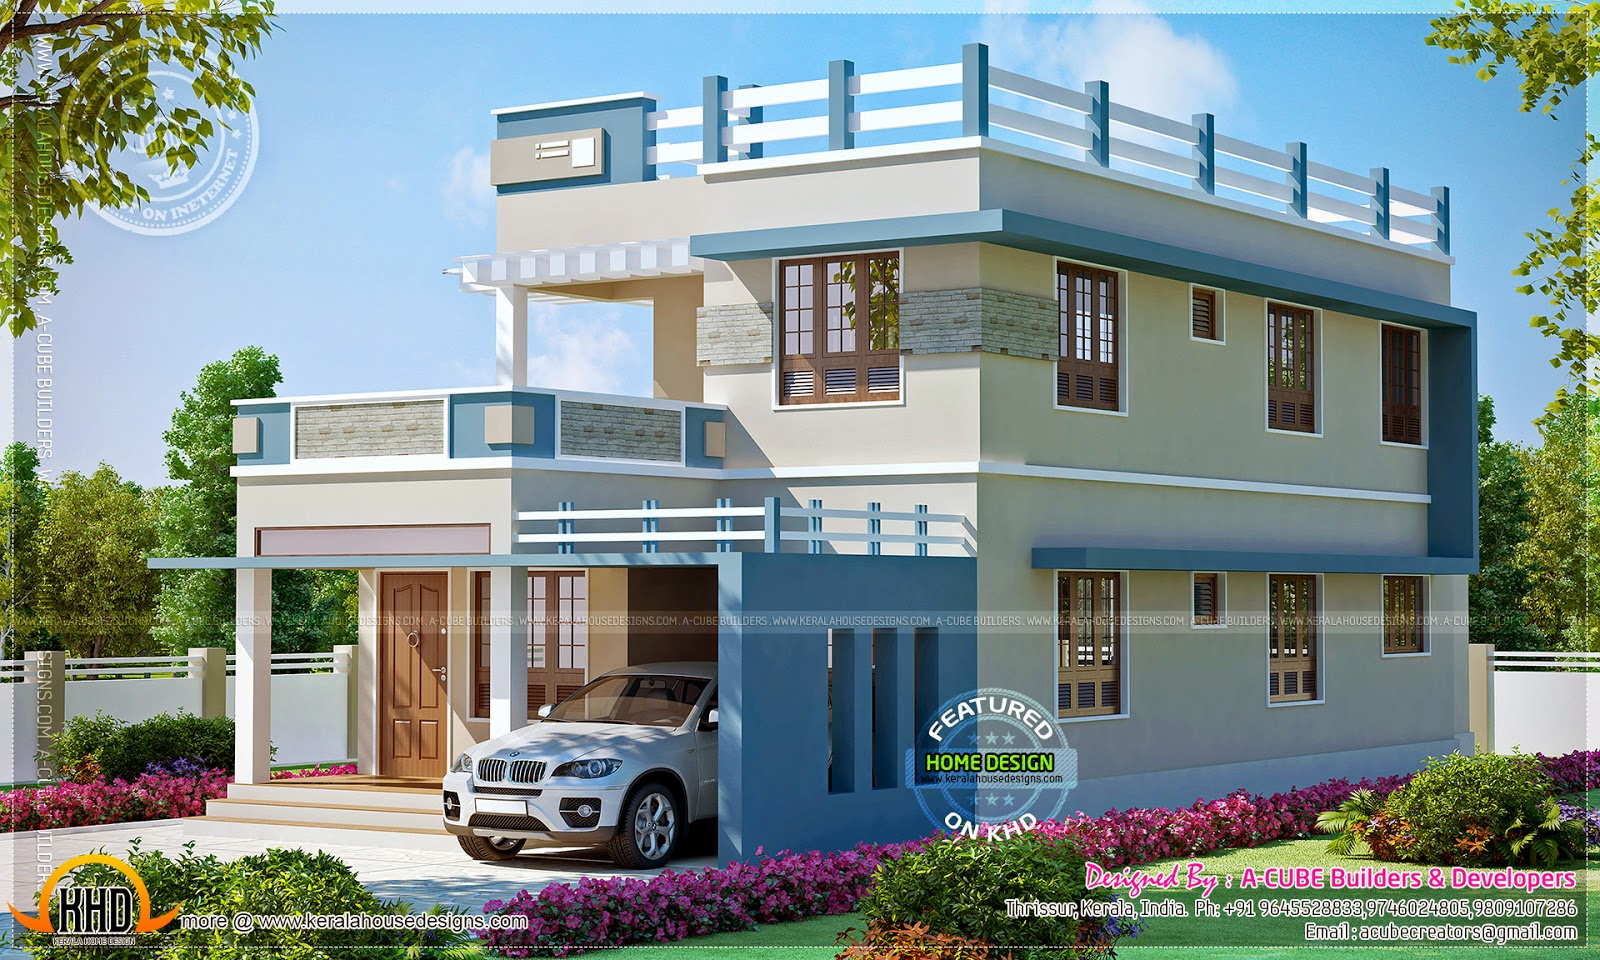 28 New Home Design Home Design New Home Design Kerala Home Design Arch